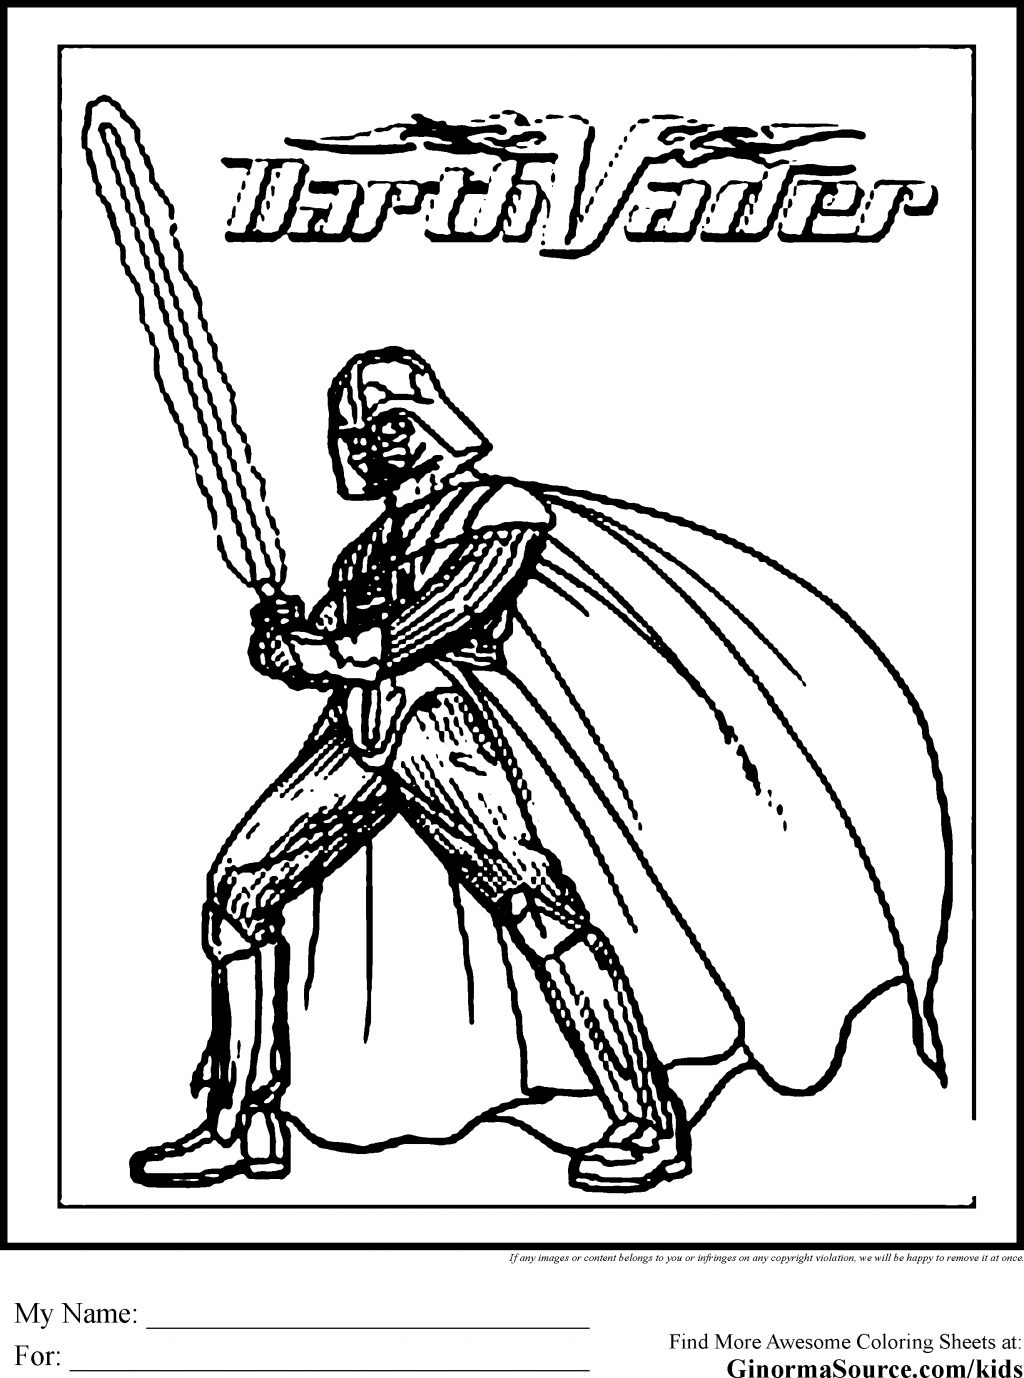 Free Star Wars Coloring Pages Coloring Pages Freentable Star Wars Coloring Pages Preschool To